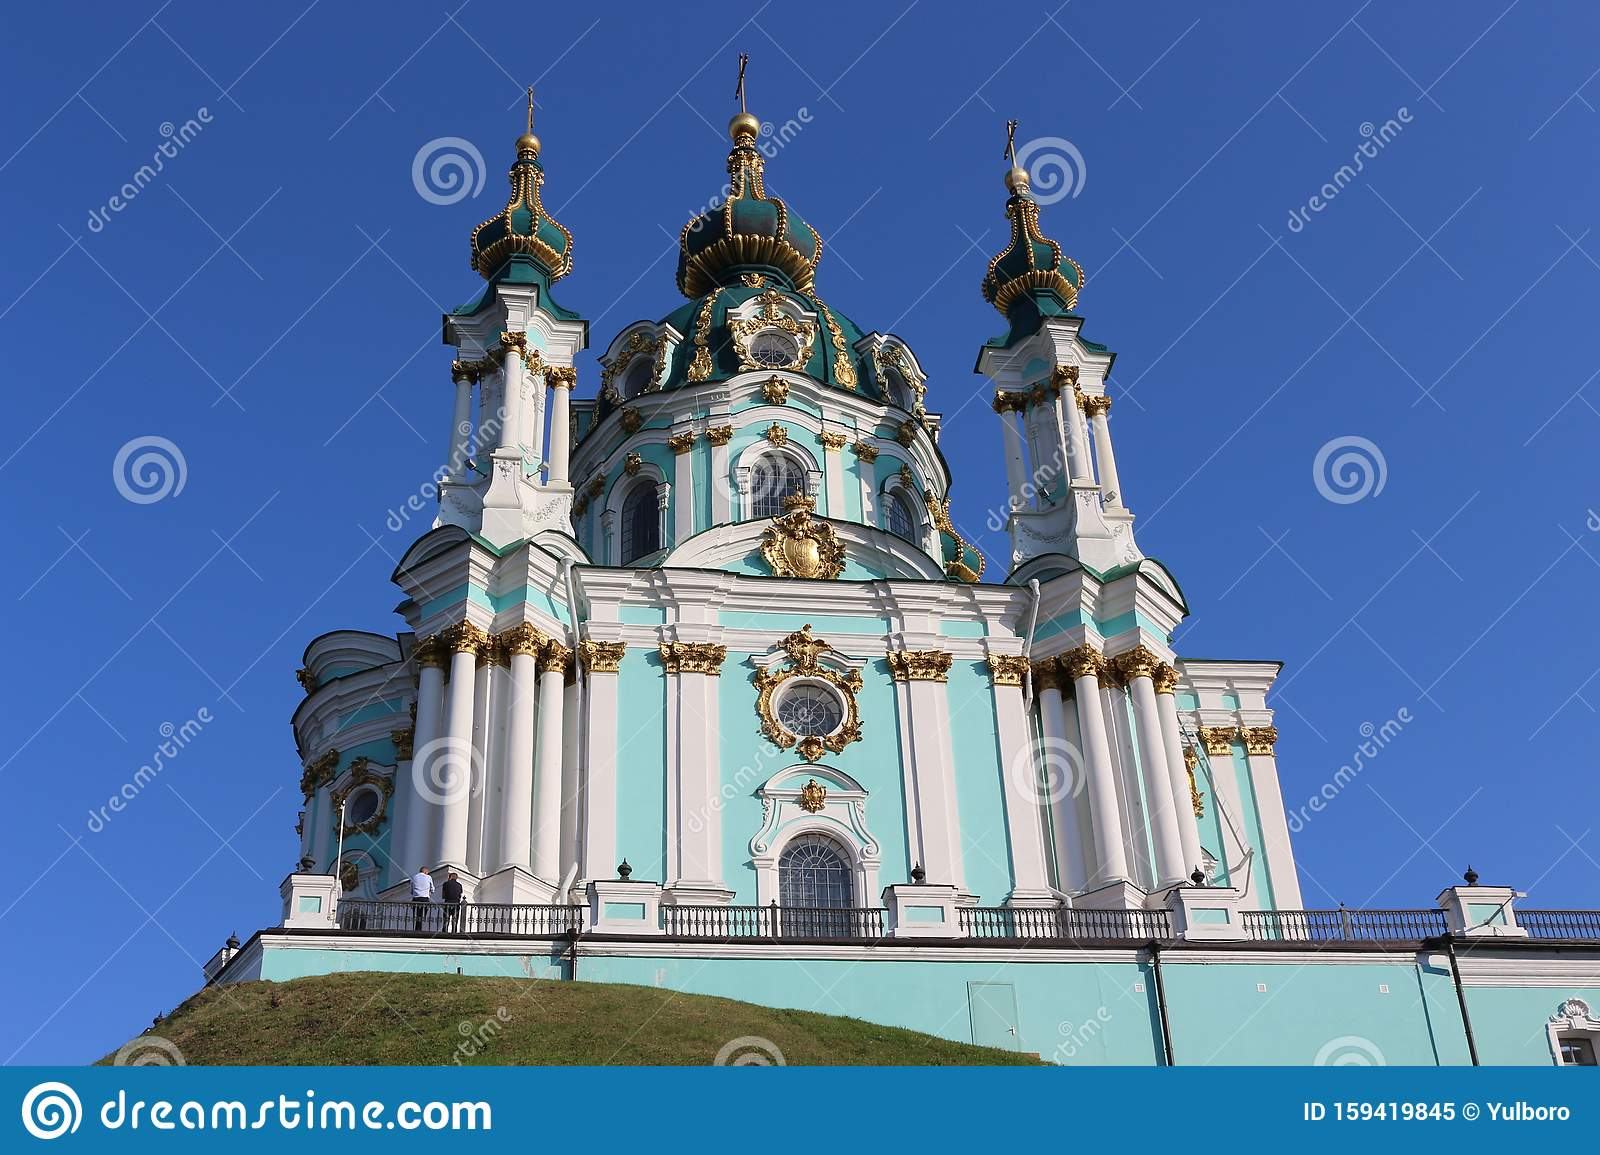 One Of The Most Beautiful Churches In Ukraine Is Located In Kiev This Is A Temple In Honor Of Andrew The Apostle Jesus Christ Stock Image Image Of Churches Historic 159419845